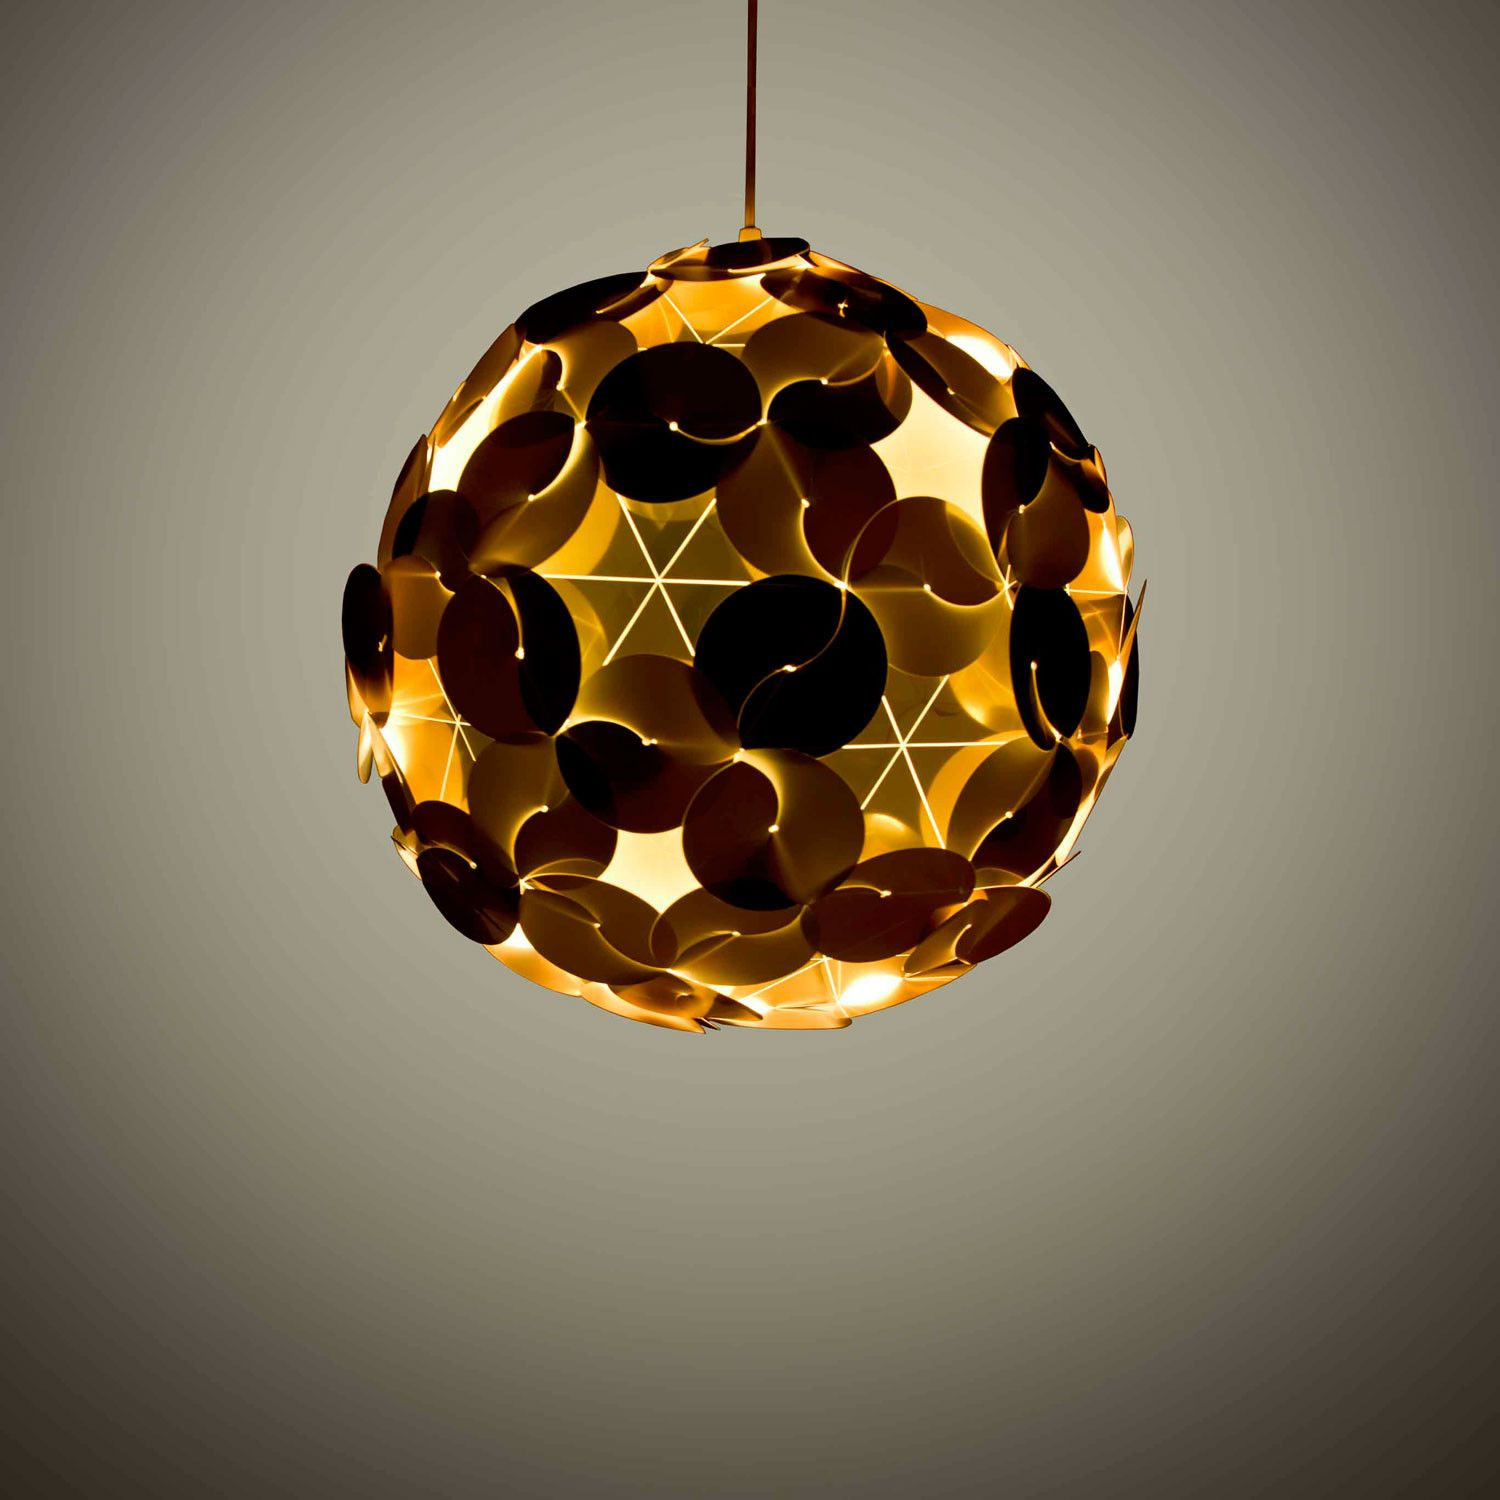 Exotic Lamp Shades exotic lamp | lighting | pinterest | lamps and design